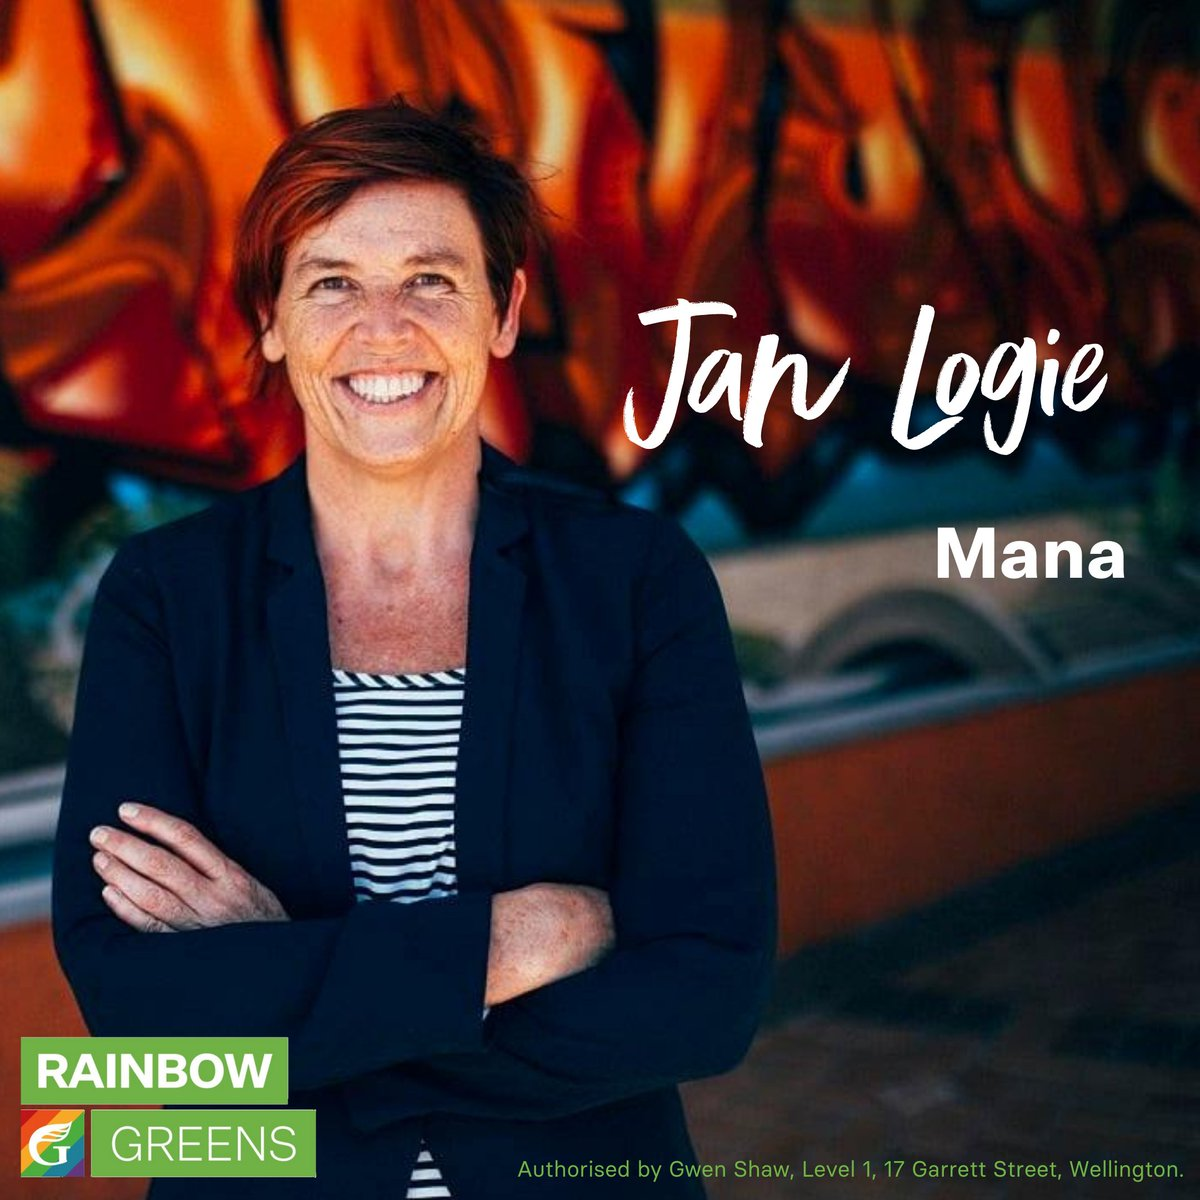 Tonight's results mean that Aotearoa will officially have the MOST QUEER PARLIAMENT IN THE WORLD! Amazing. So PROUD of our Rainbow @NZGreens team. Huge congrats @janlogie @_chloeswarbrick @EKerekere & @RMarchNZ   💚🏳️🌈💚🏳️⚧️💚 https://t.co/7CzVkBj3OT